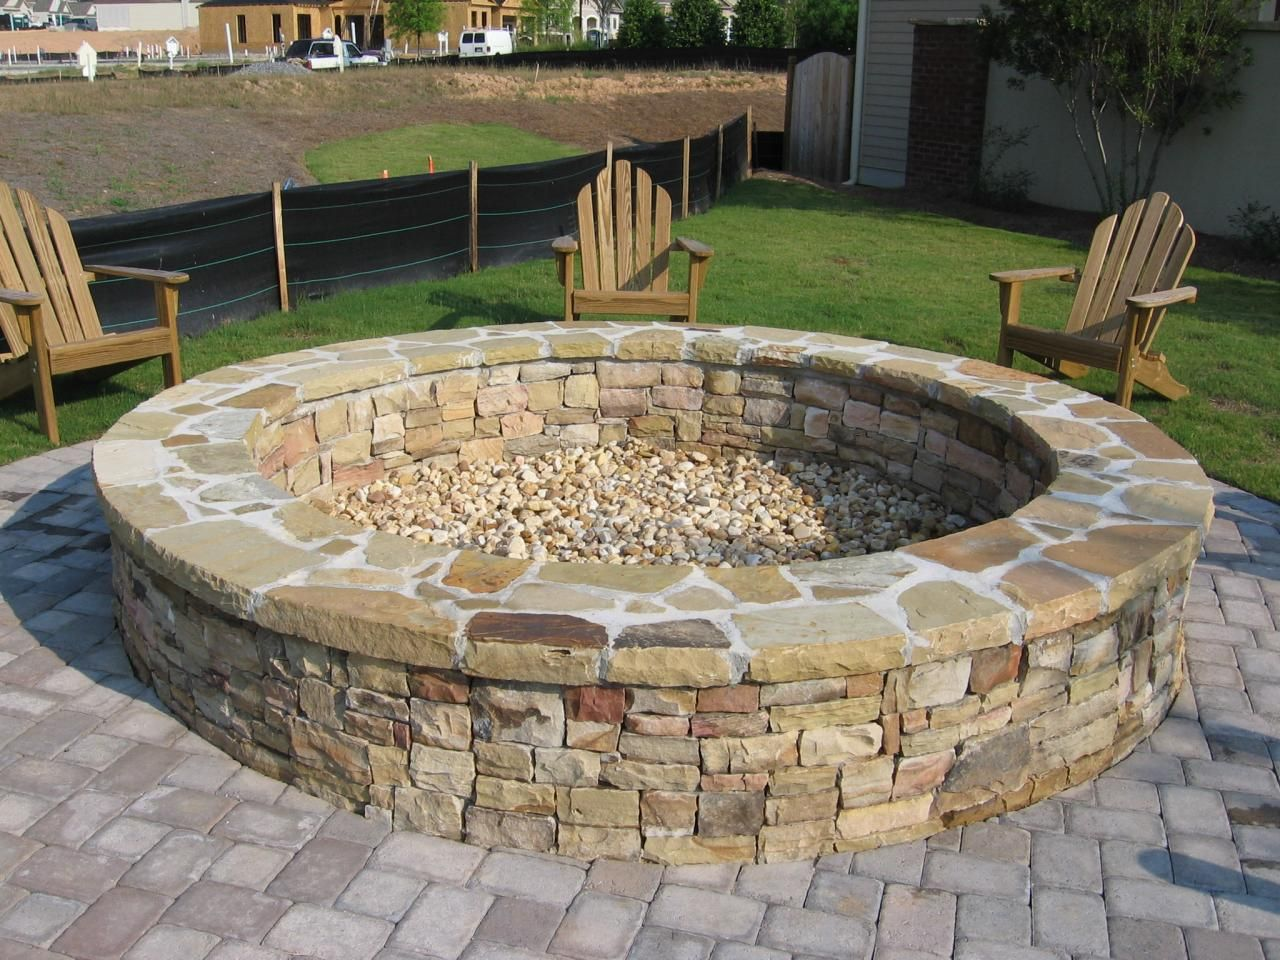 Stone fire pit designs patio traditional with artistic hardscape - Large Fire Pit Round Stone Fire Pit And Bench With Large Wooden Fire Pit Bench